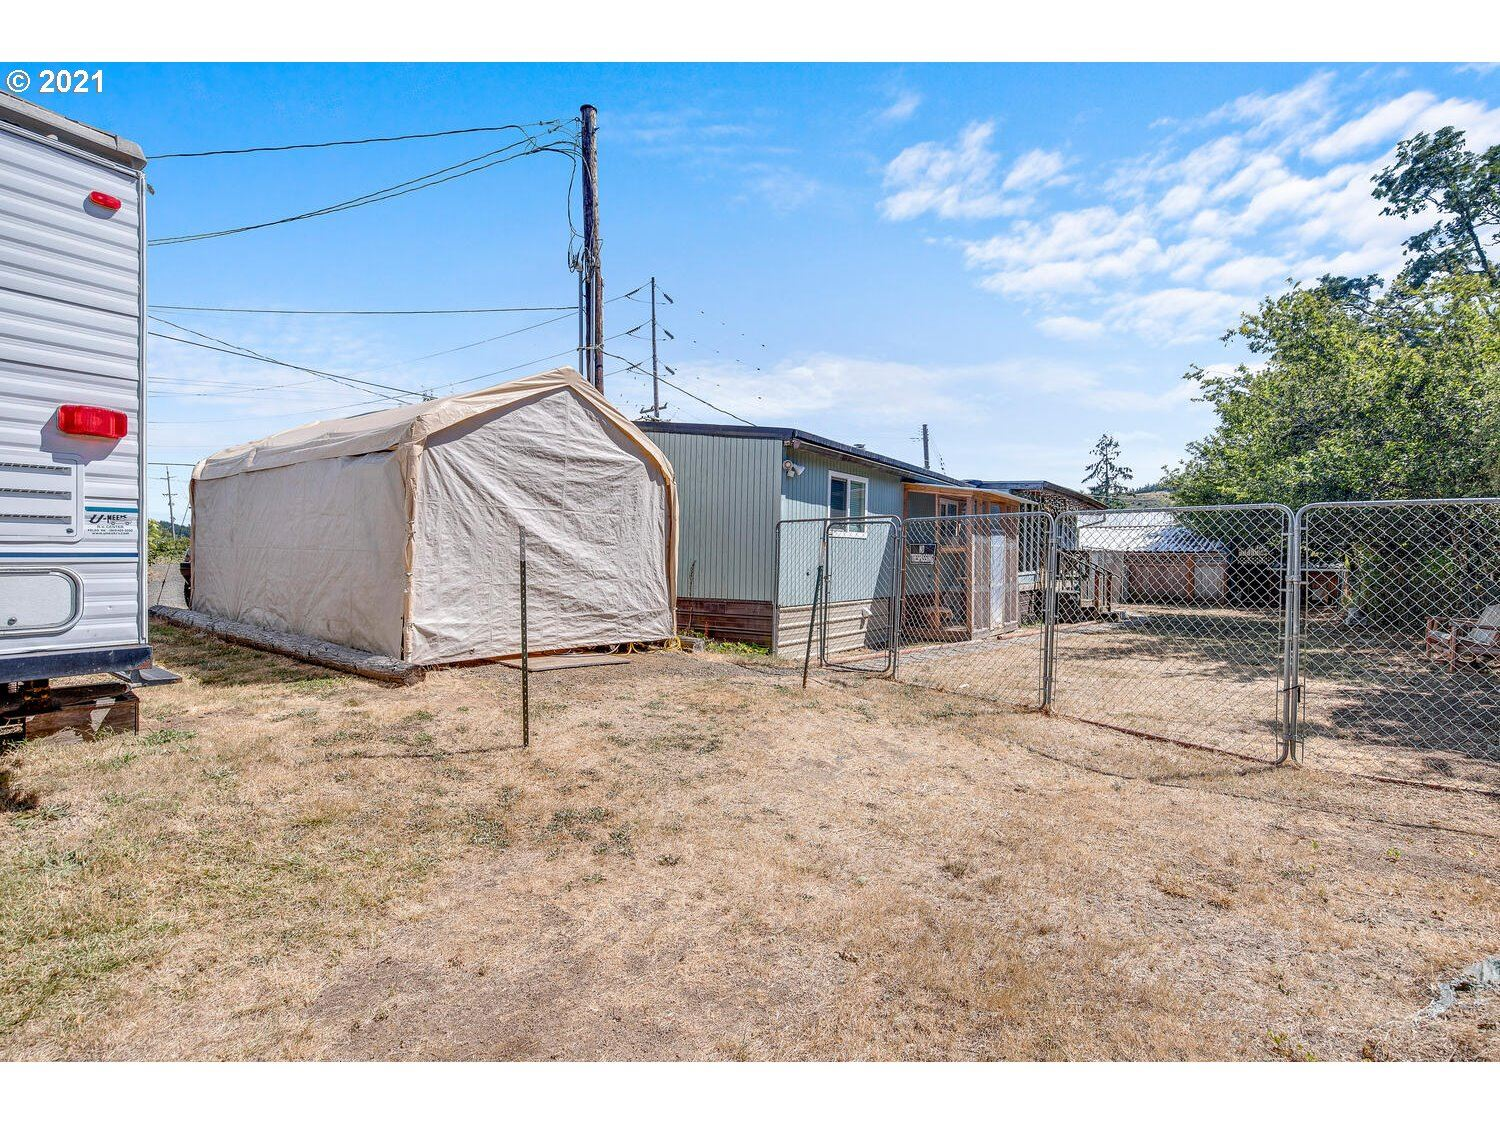 Photo of 8855 FORT HILL RD WILLAMI, Willamina, OR 97396 (MLS # 21484768)